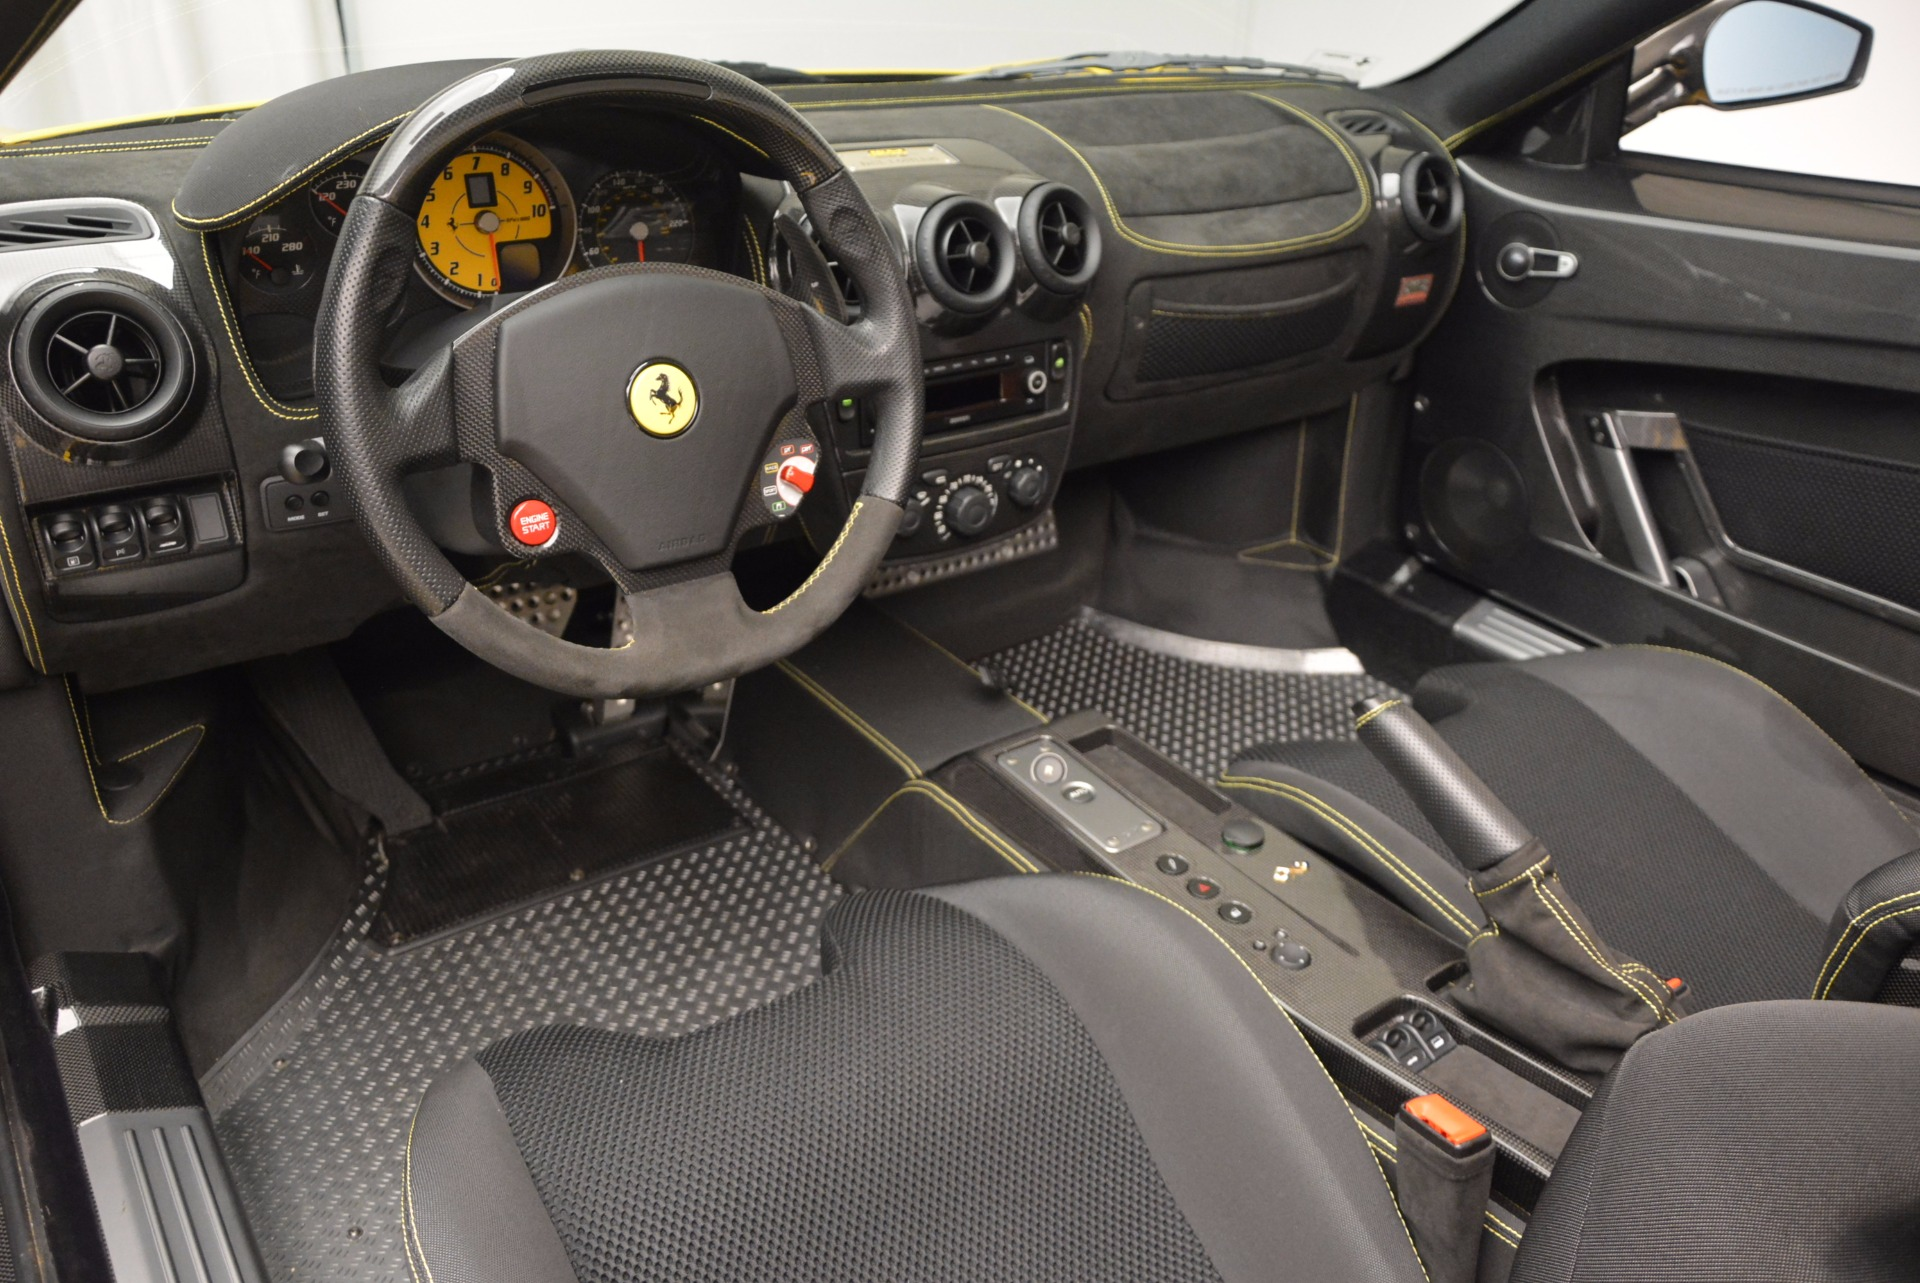 Used 2009 Ferrari F430 Scuderia 16M For Sale In Greenwich, CT 856_p25